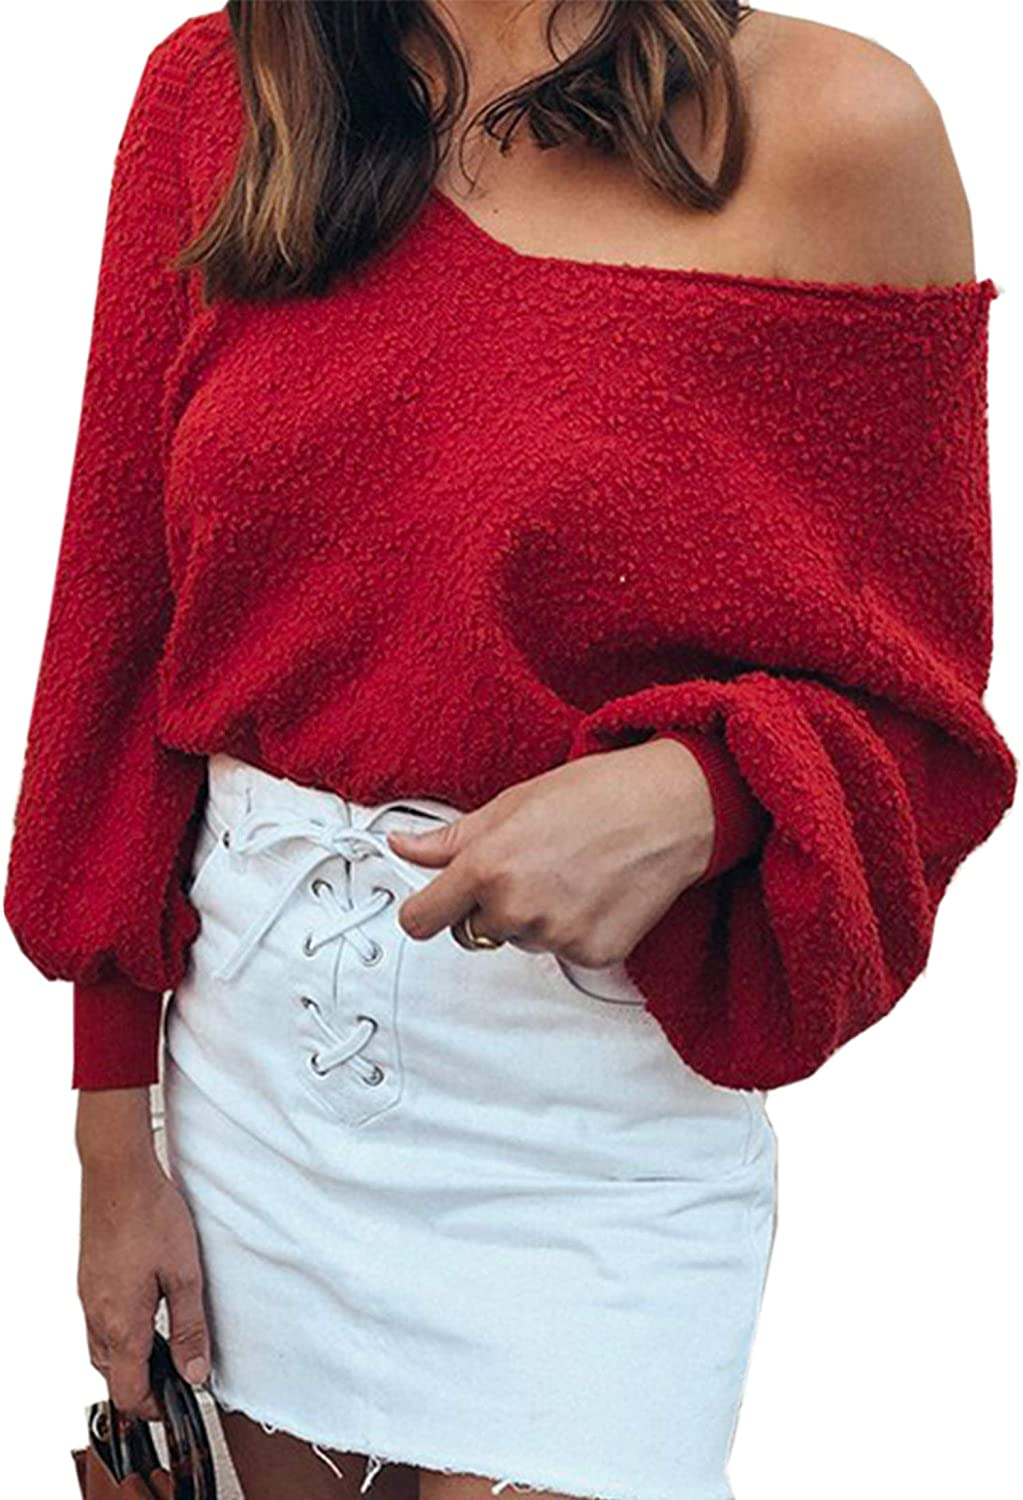 Angashion Women Sweatshirts - Long Sleeve V Neck Fleece Fuzzy Loose Pullover Sweater Tops CT688